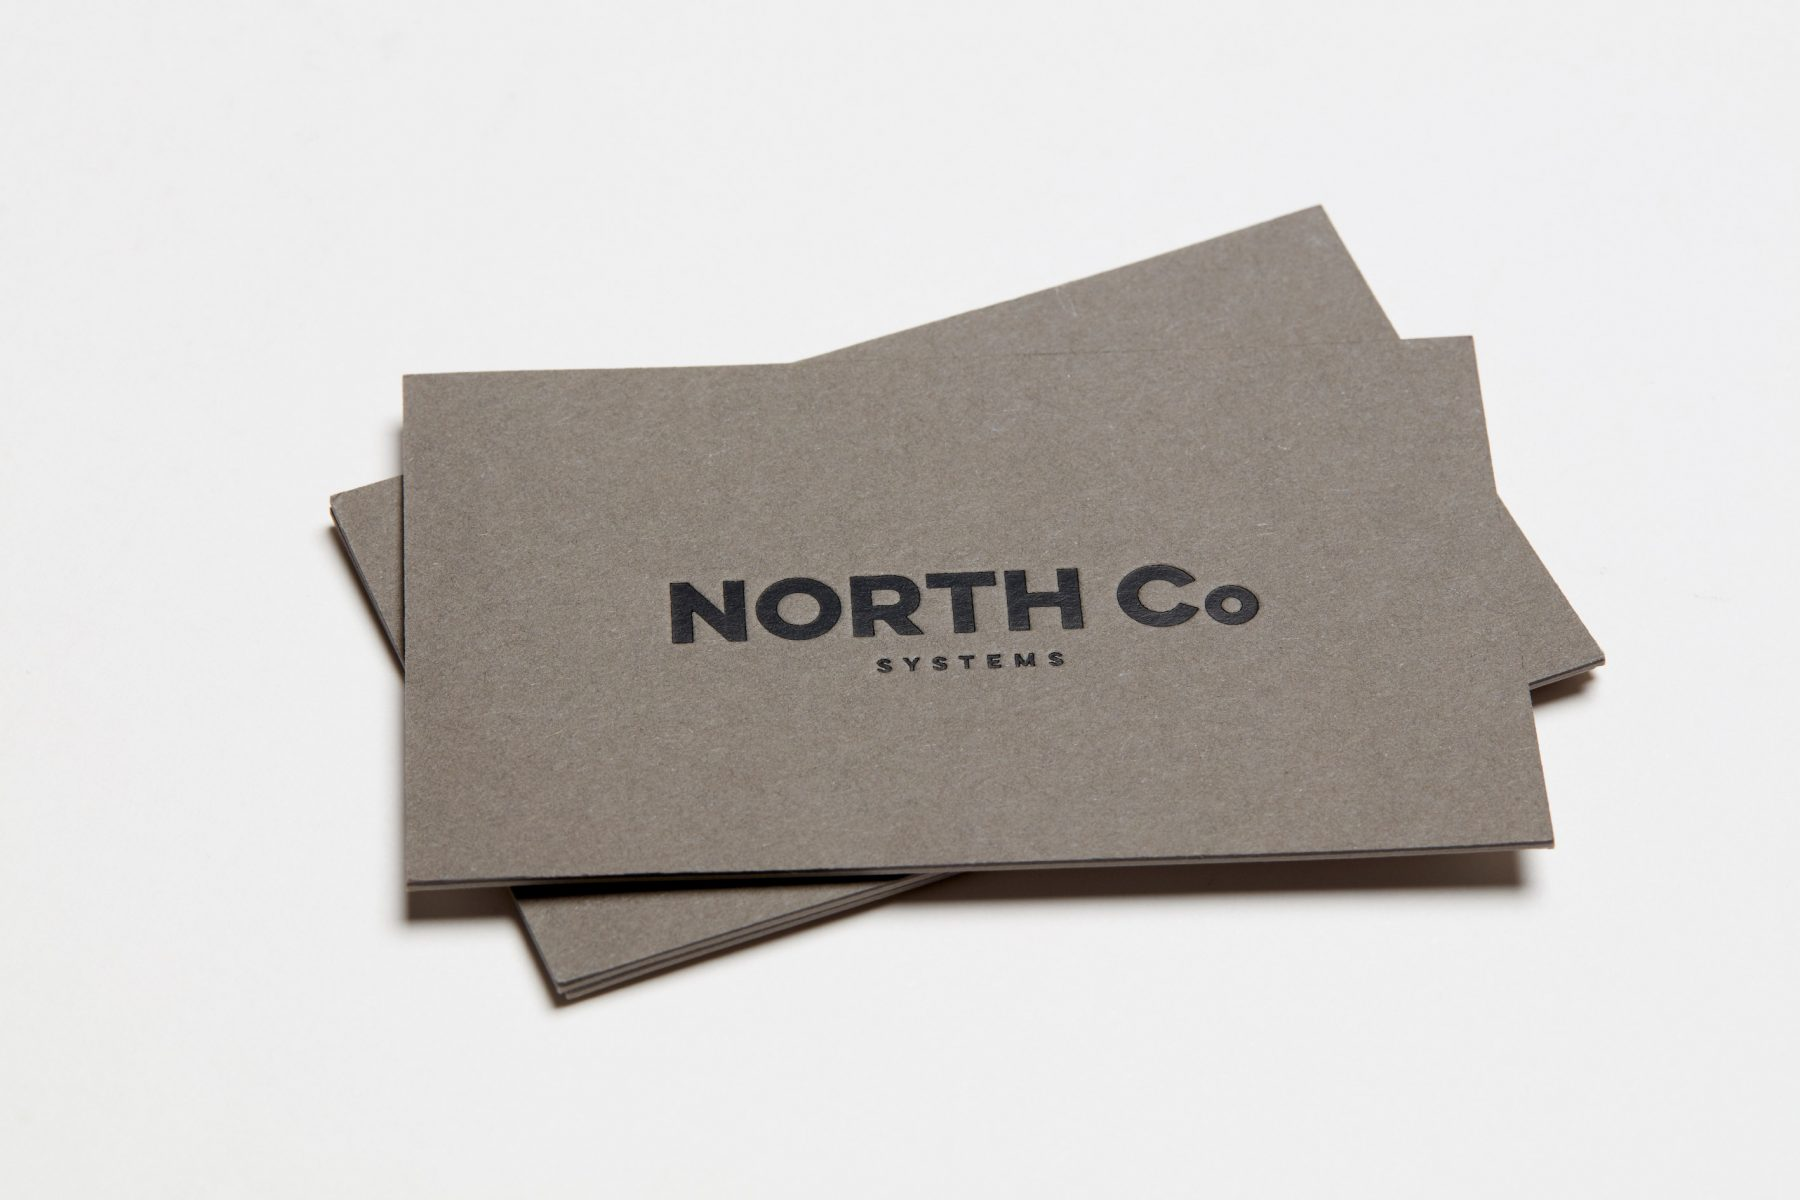 North Co Systems – naming, branding and communications